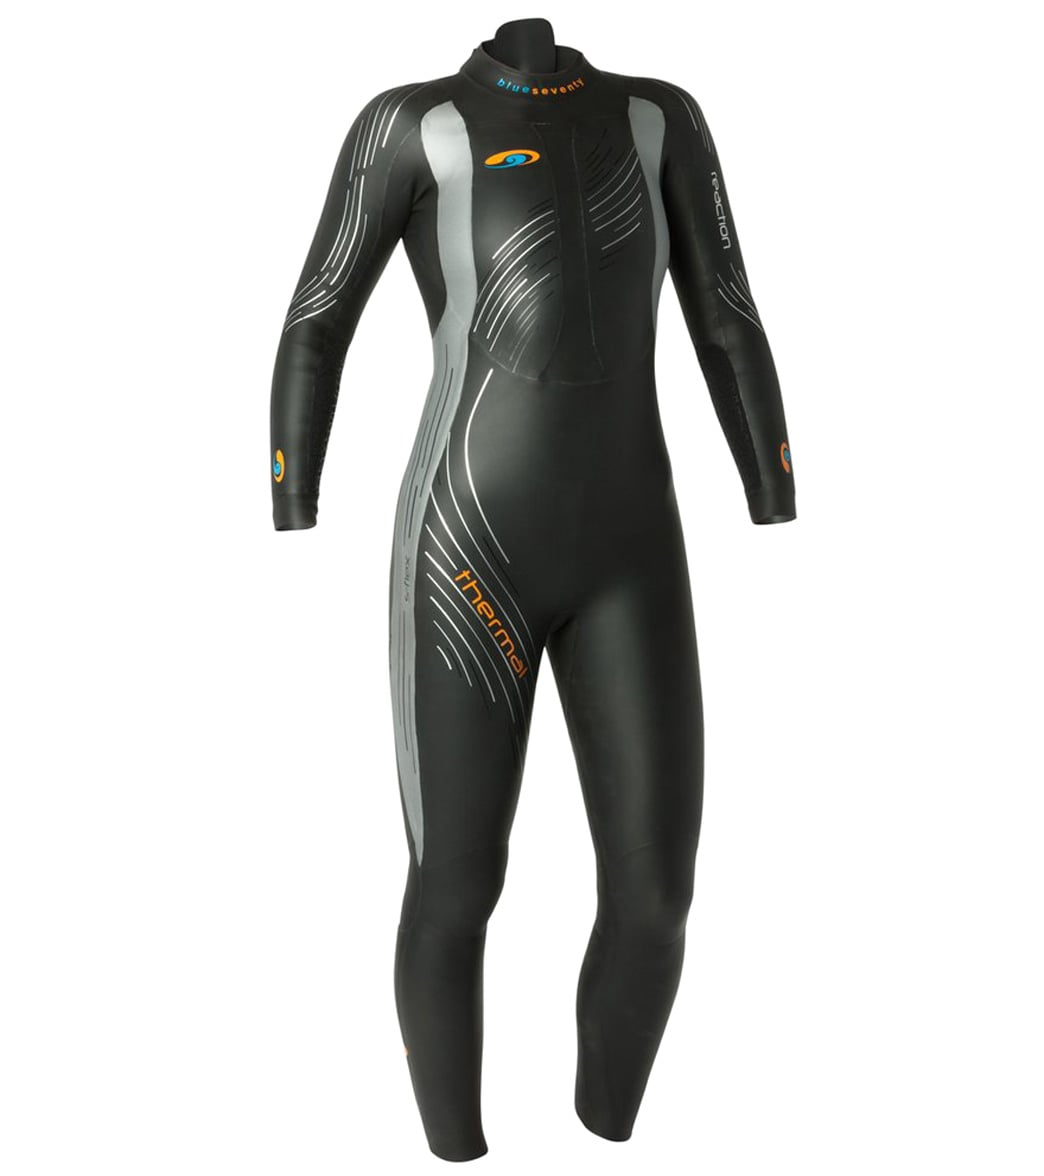 a19f806b44b0 Blueseventy Women's Thermal Reaction Tri Wetsuit at SwimOutlet.com - Free  Shipping